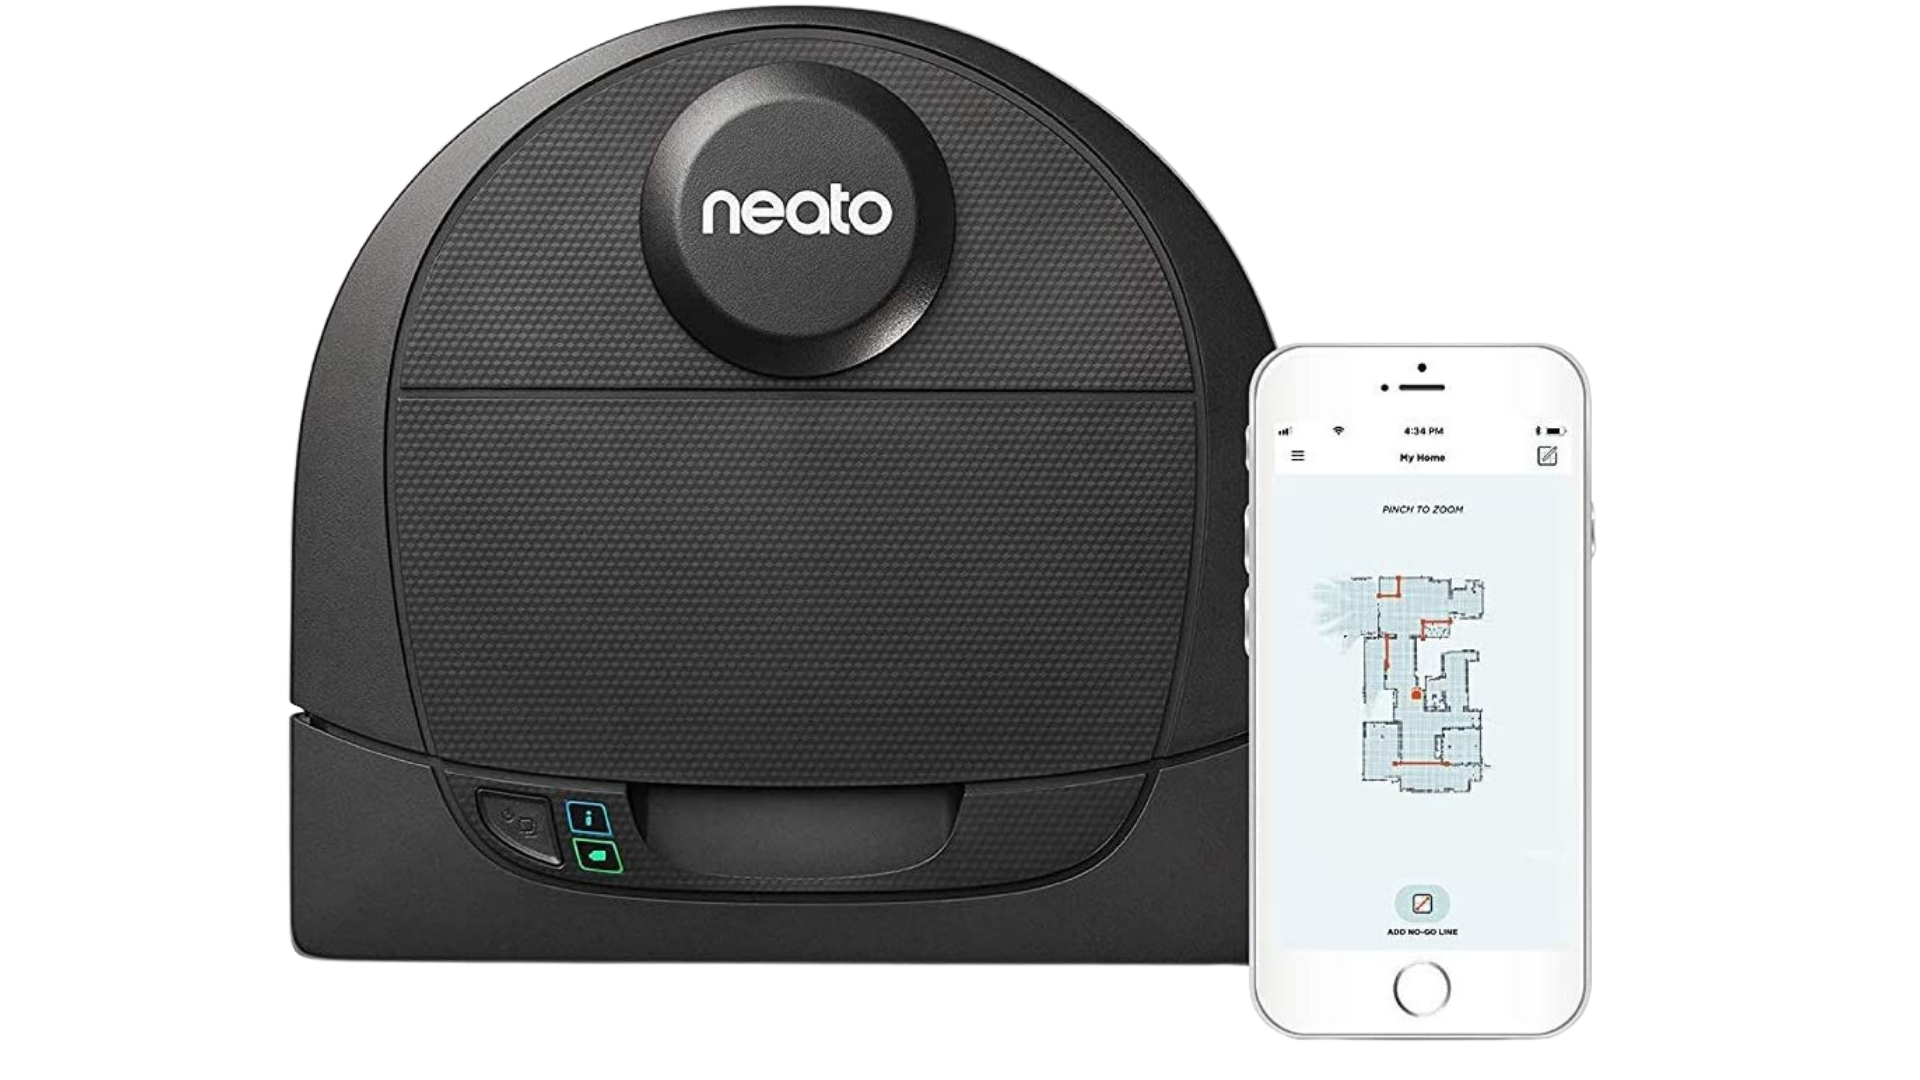 Neato best robot vacuums for pet hair